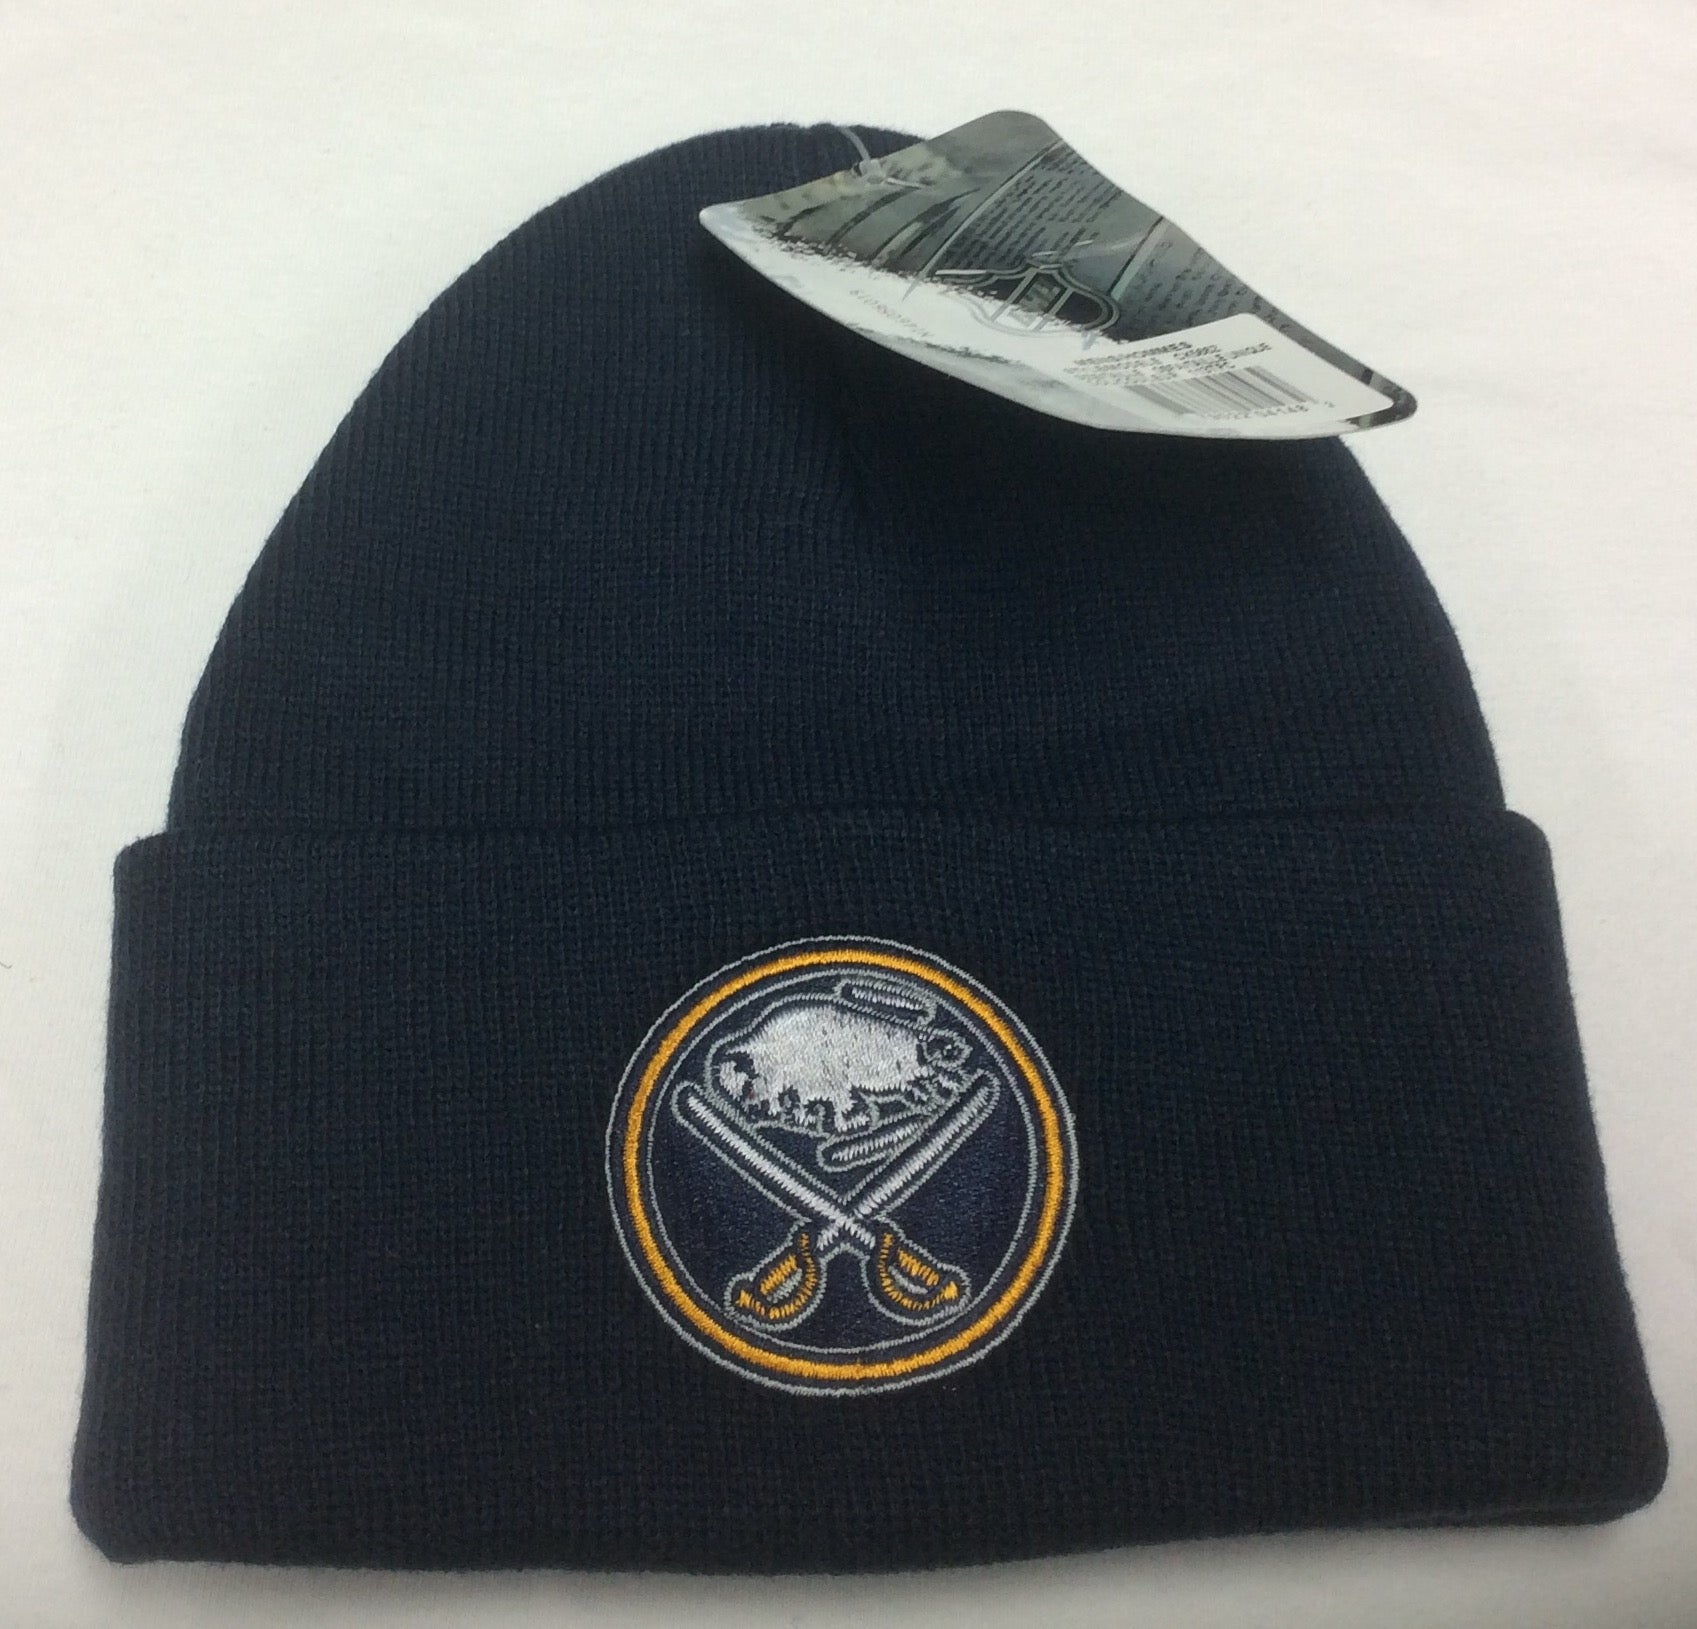 the best attitude 0b3bc 968f9 Buffalo Sabres Navy Reebok NHL Watchman Cuffed Knit Hat.  10.99  16.99. Size